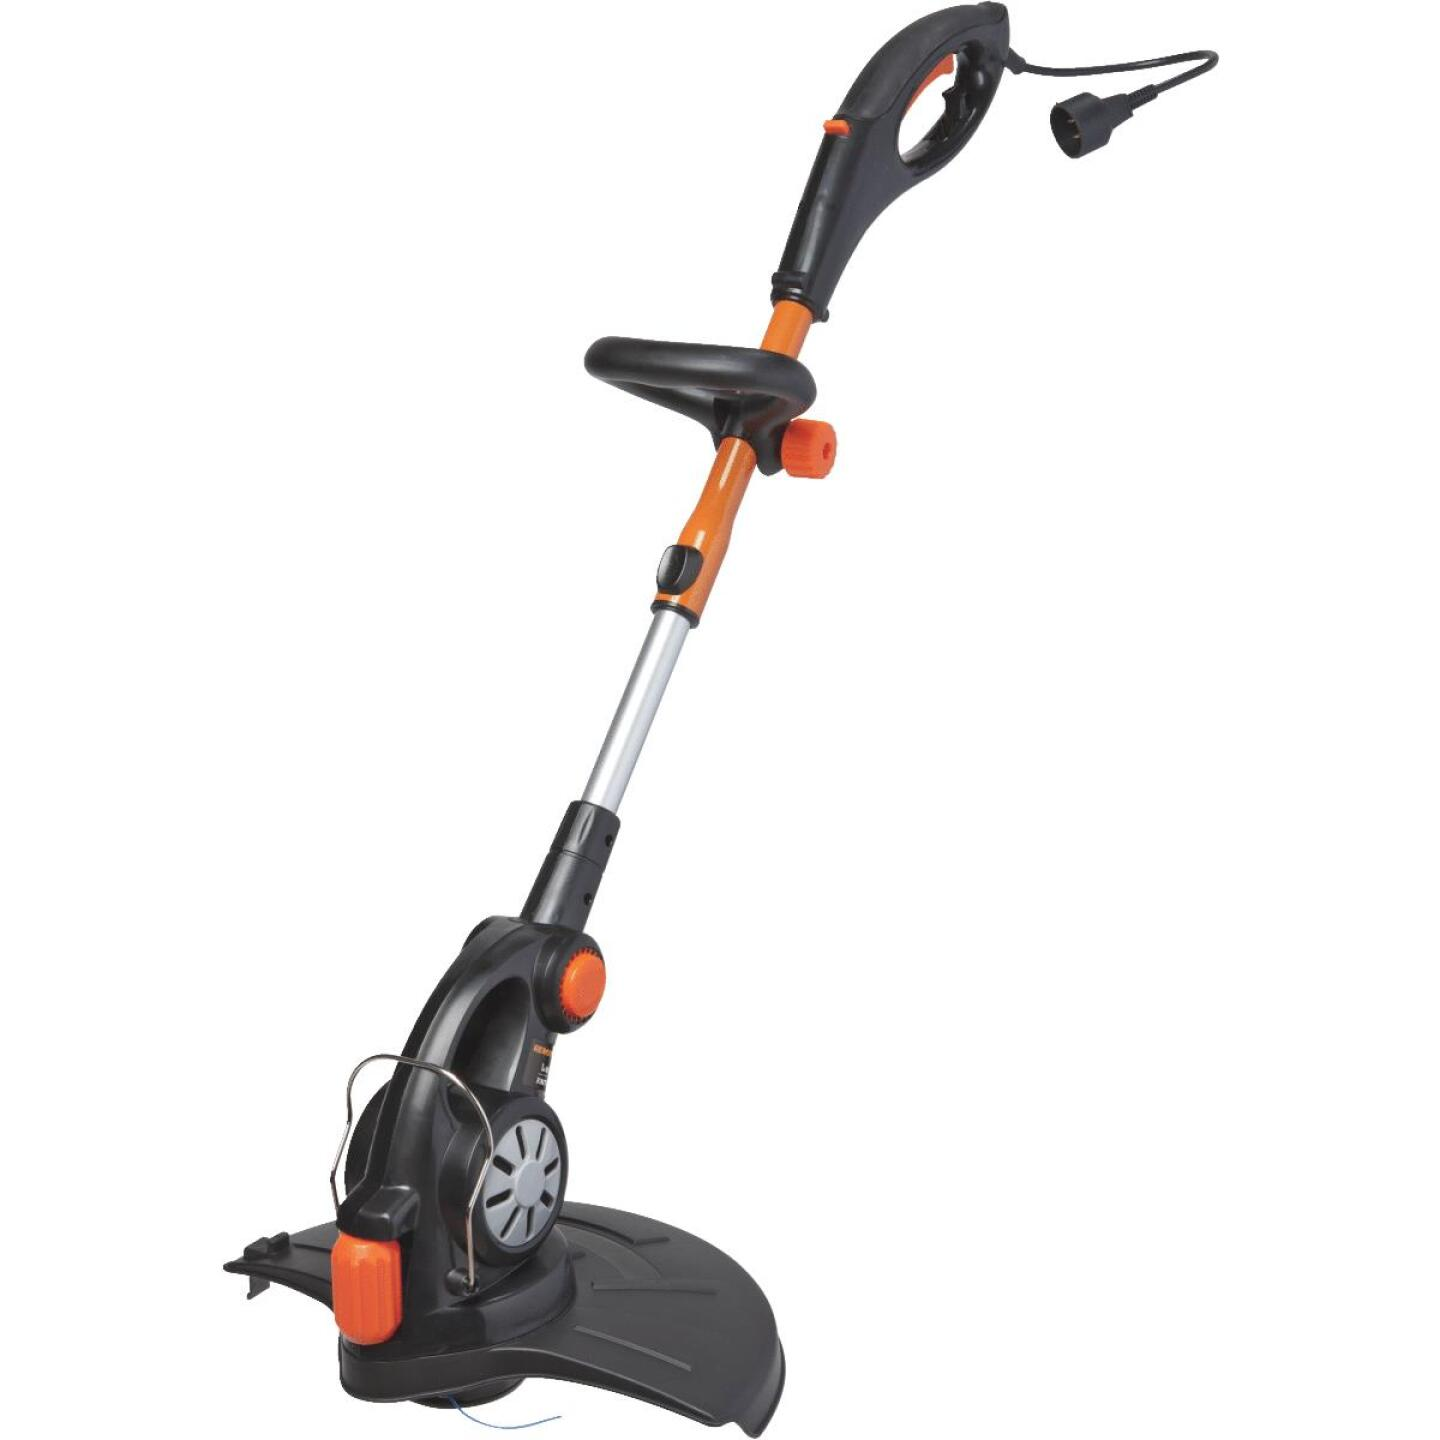 Remington RM115ST 14 In. 5.5-Amp Straight Shaft Corded Electric String Trimmer/Edger Image 6